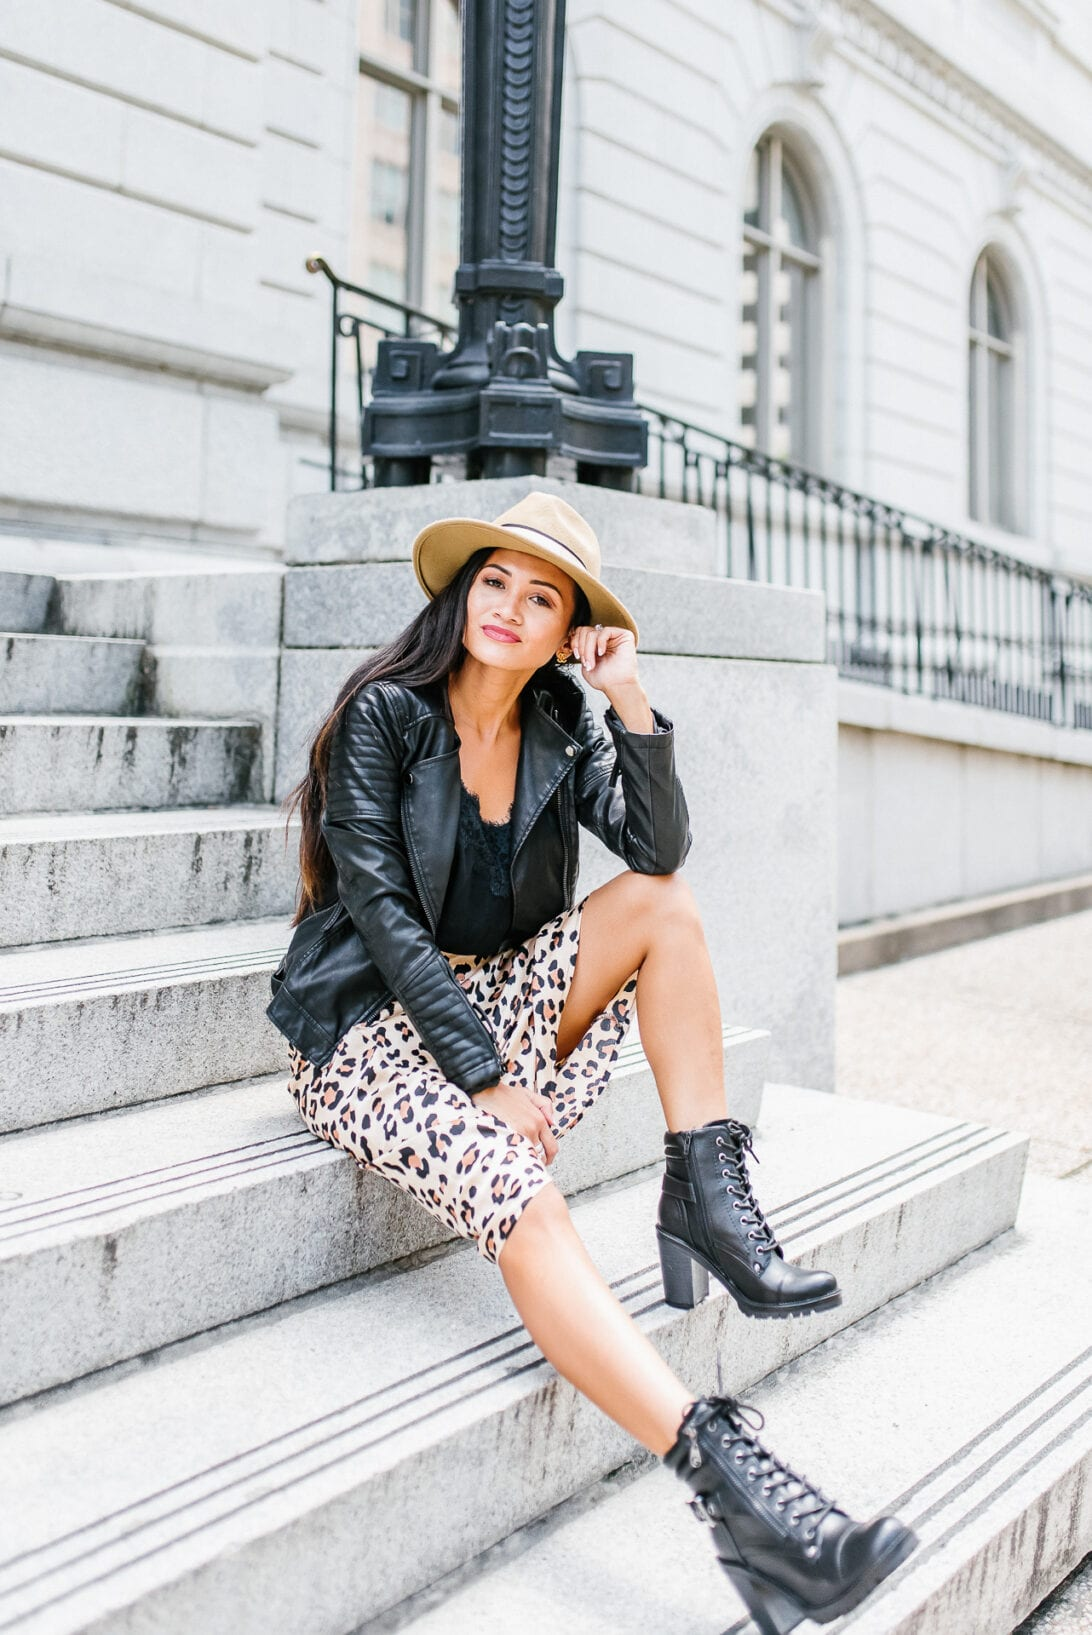 LACE UP BOOTS, FAUX LEATHER JACKET, FEDORA, HOW TO STYLE LEOPARD SKIRT